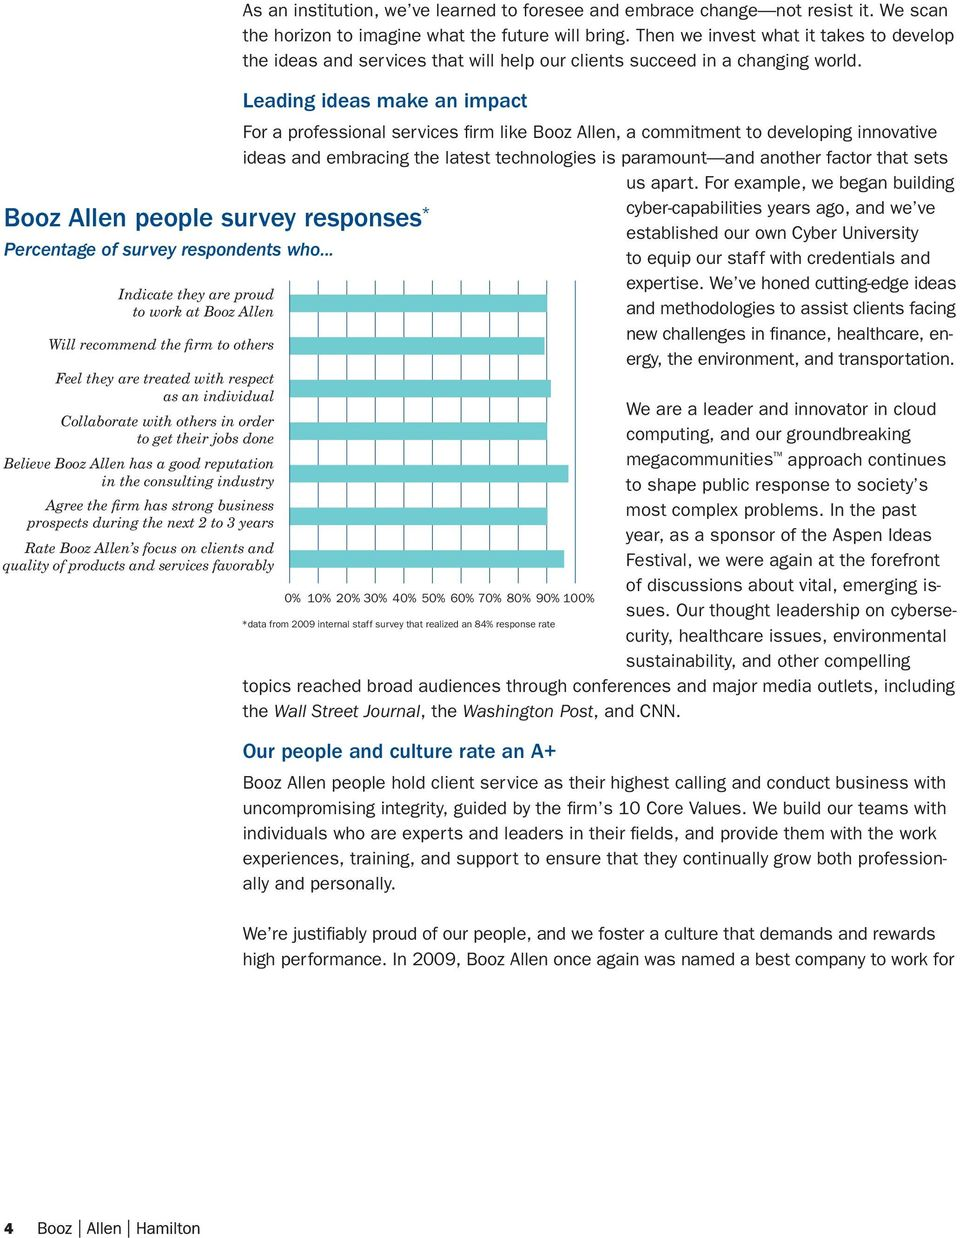 Booz Allen has a good reputation in the consulting industry Agree the firm has strong business prospects during the next 2 to 3 years Rate Booz Allen s focus on clients and quality of products and